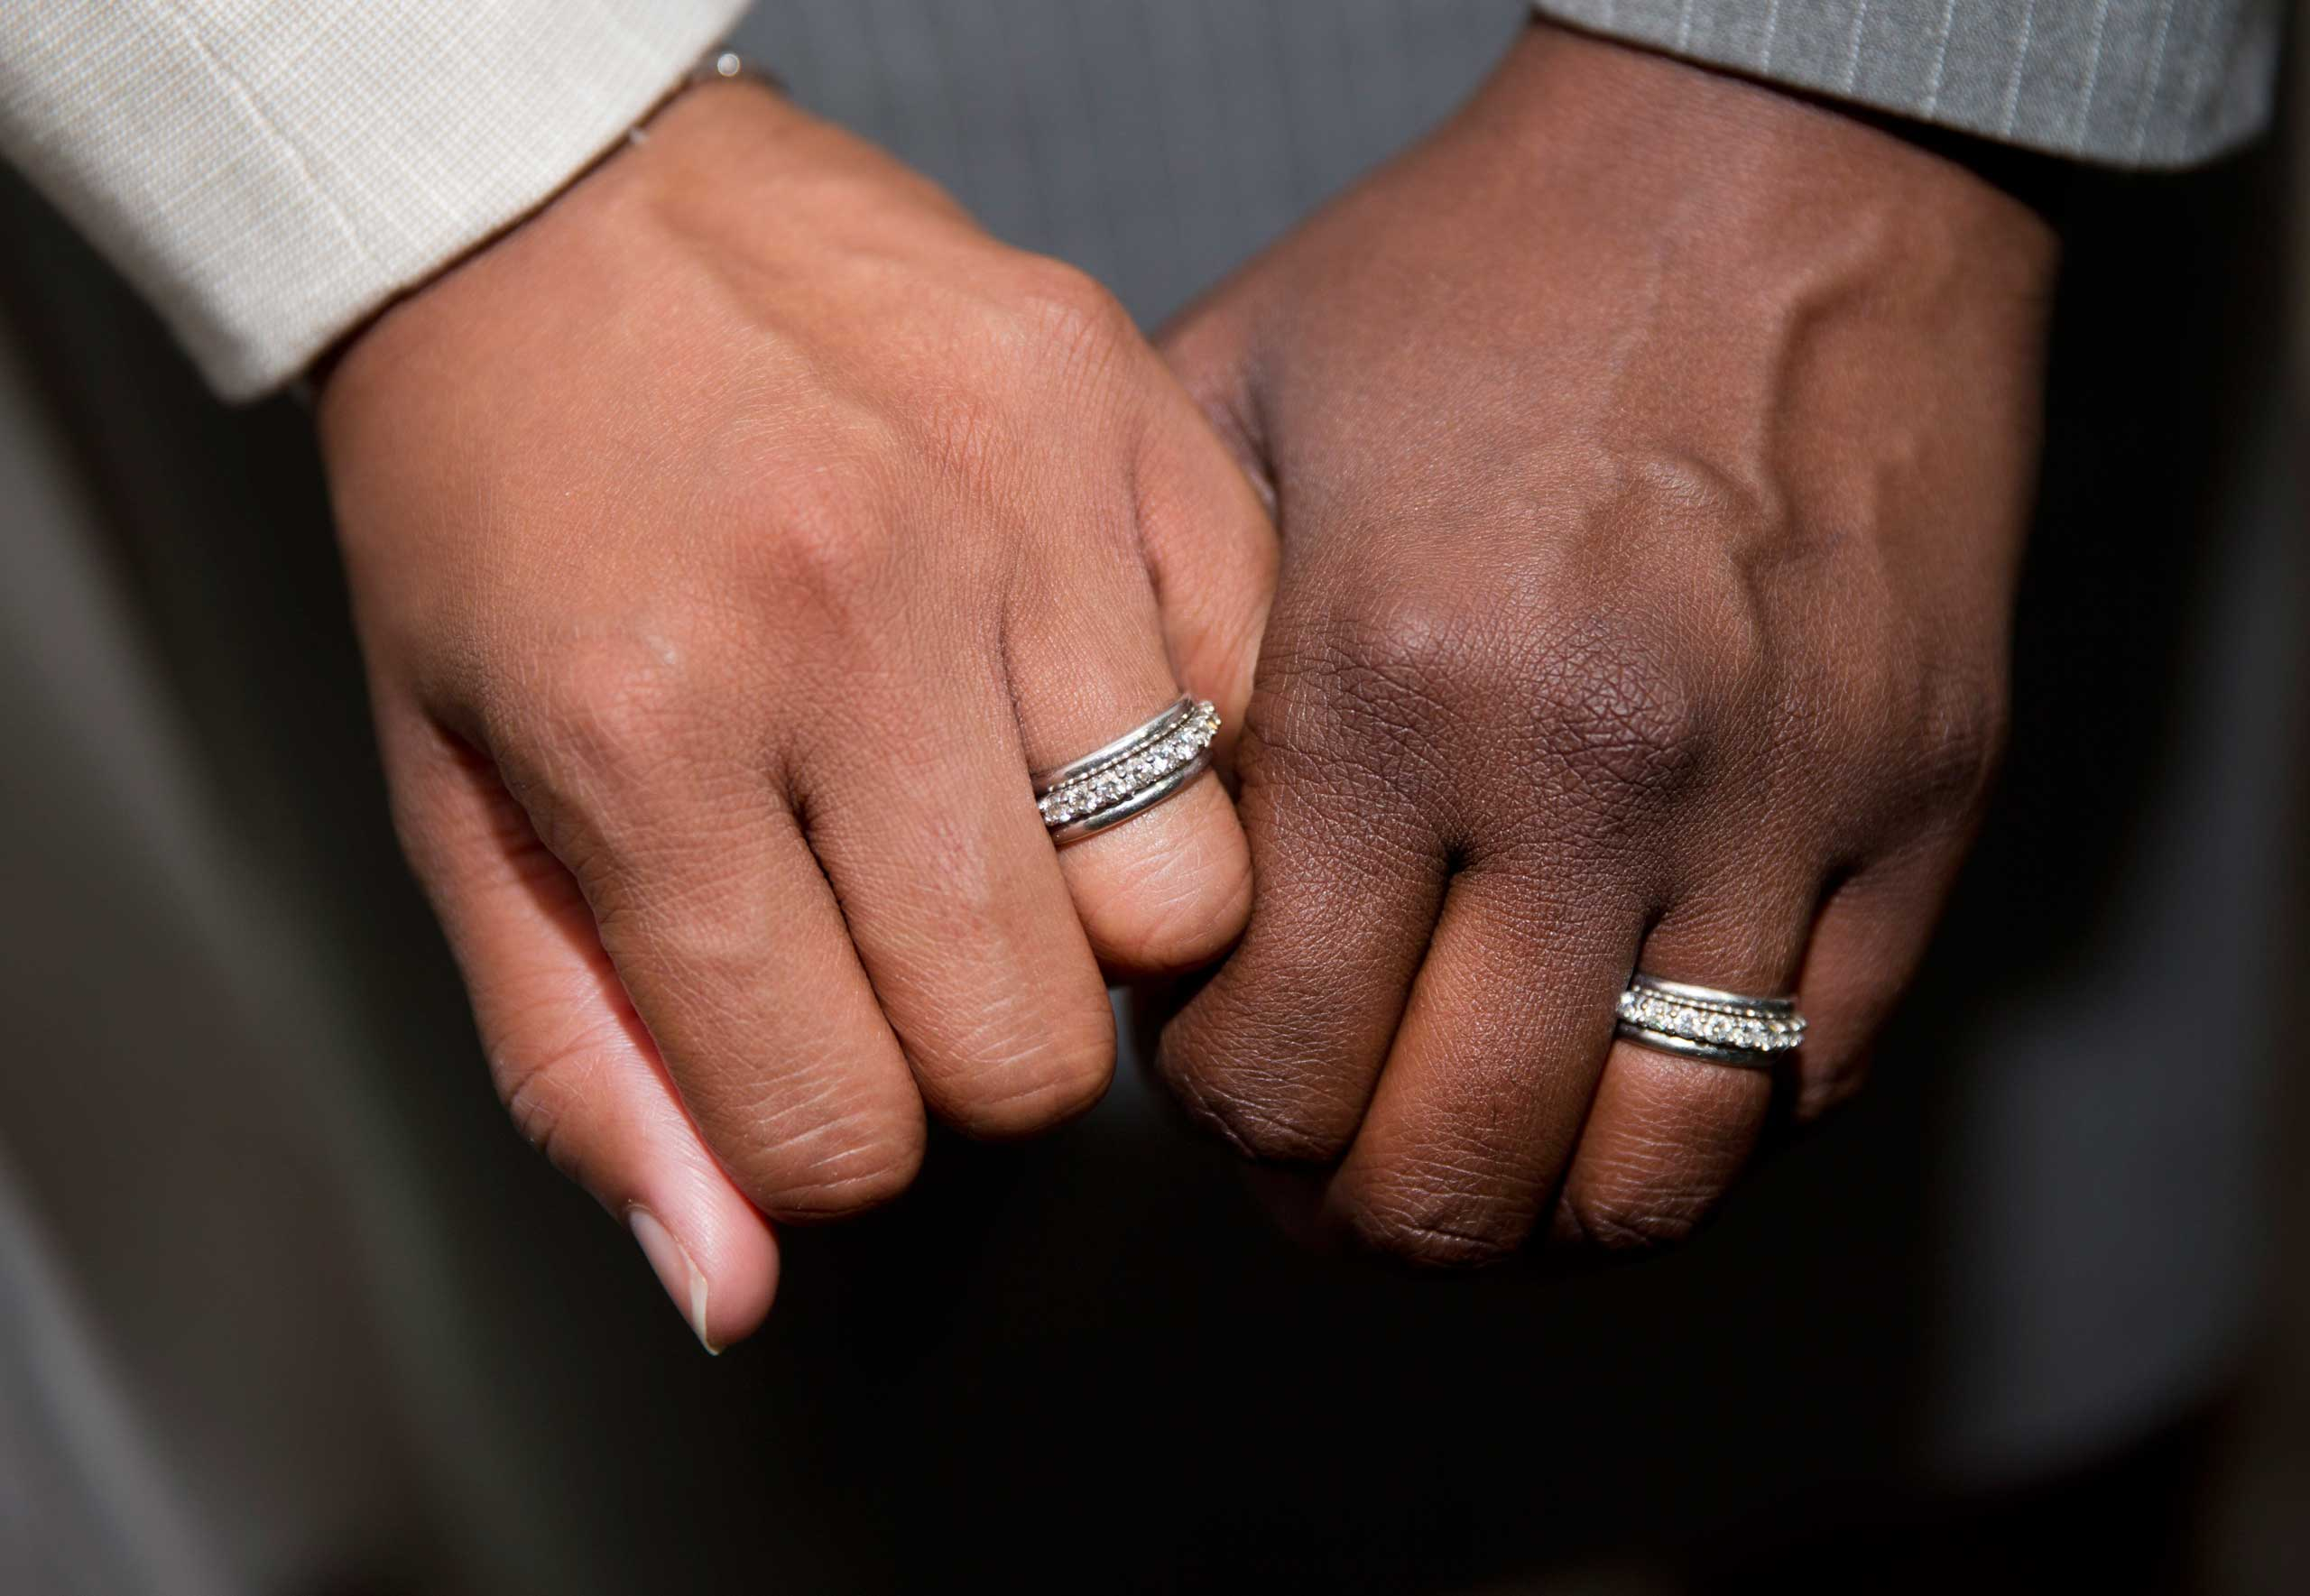 Emma Foulkes, left, and Petrina Bloodworth hold hands and show their wedding rings after being married at the Foulton County Courthouse in Atlanta on June 26, 2015.